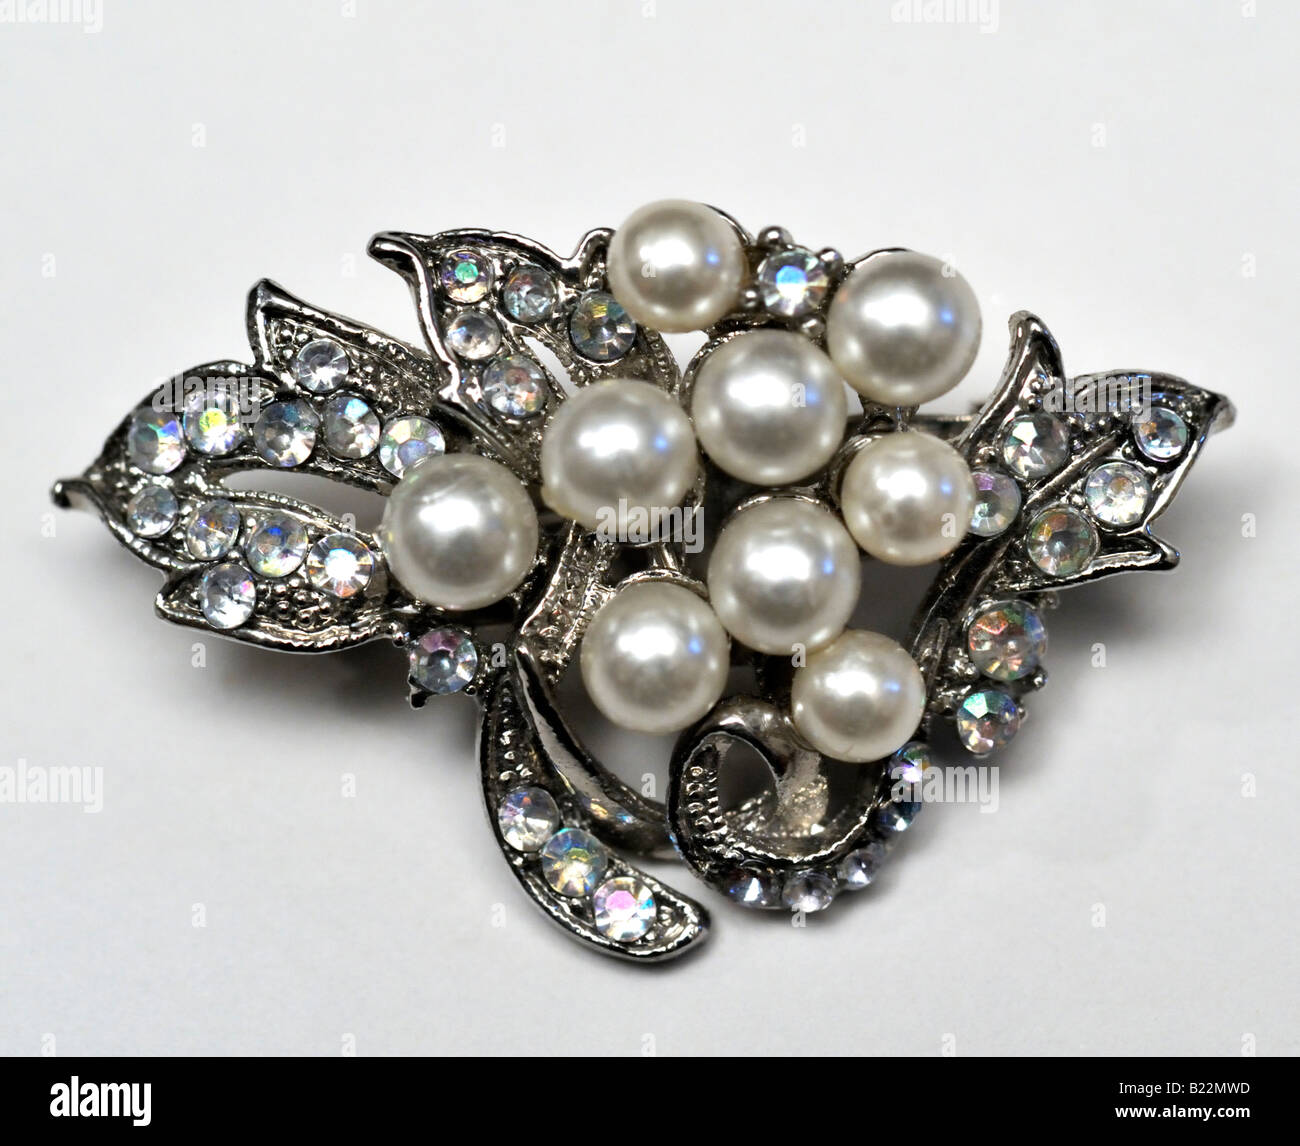 brooch royalty image free a faux photo with pearls stock